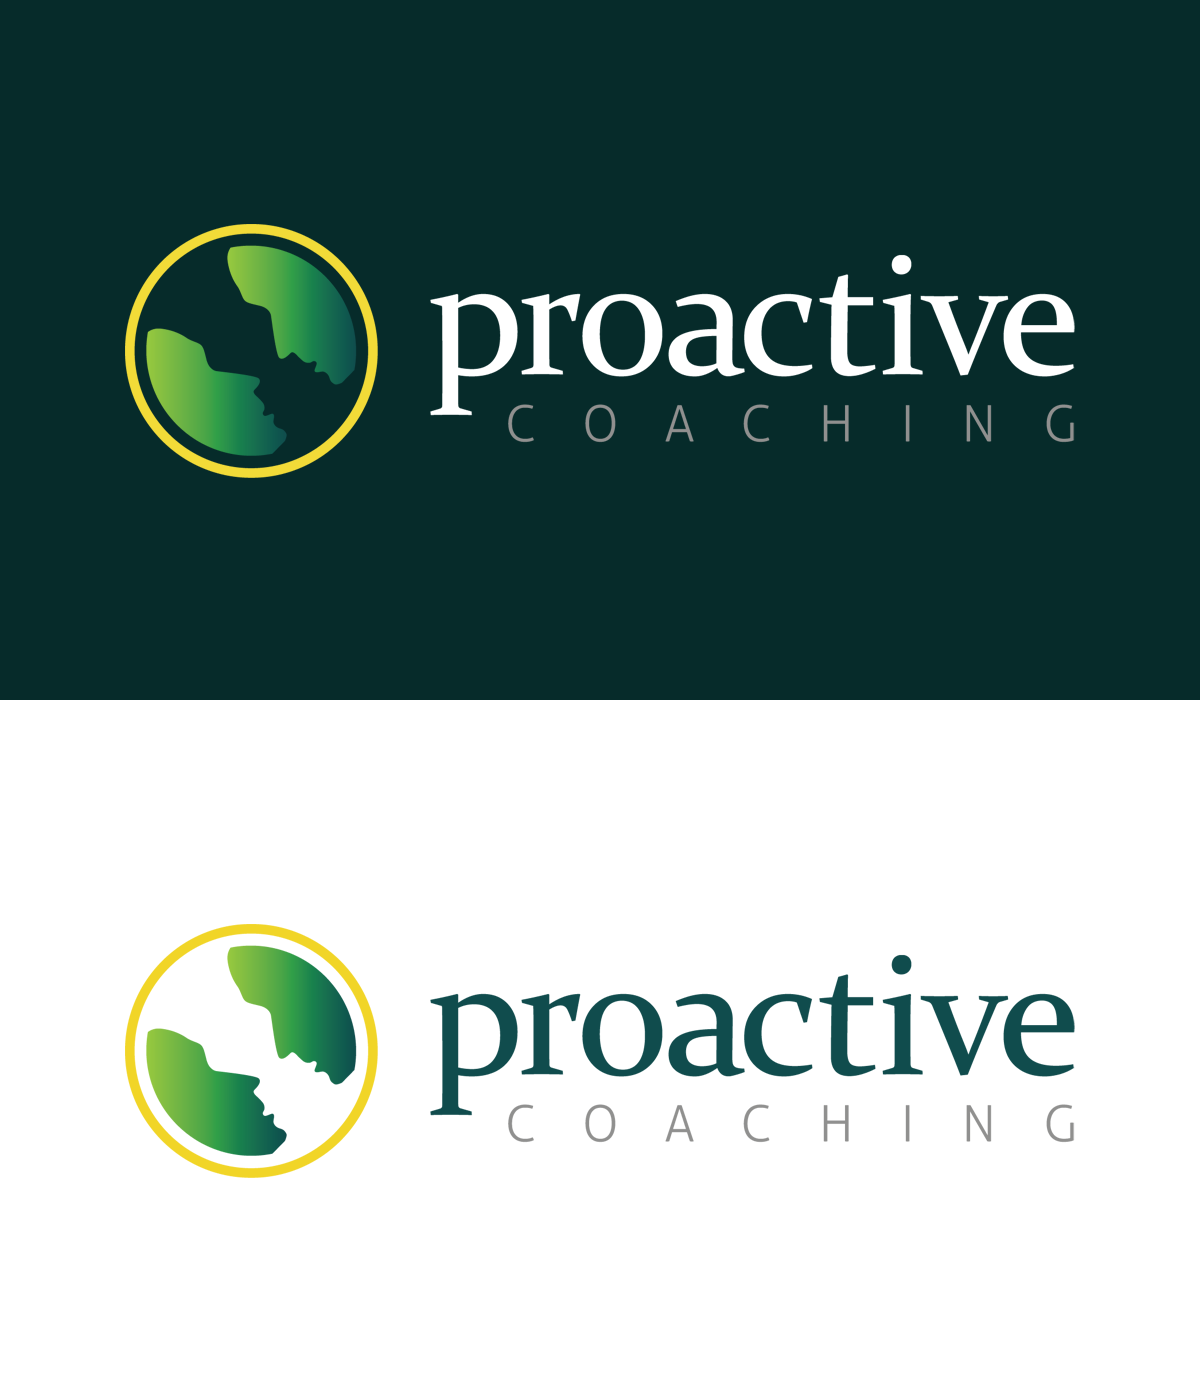 proactive dating Teen dating violence prevention and we believe we must be proactive if we want to help future generations dating violence is similar to adult domestic.